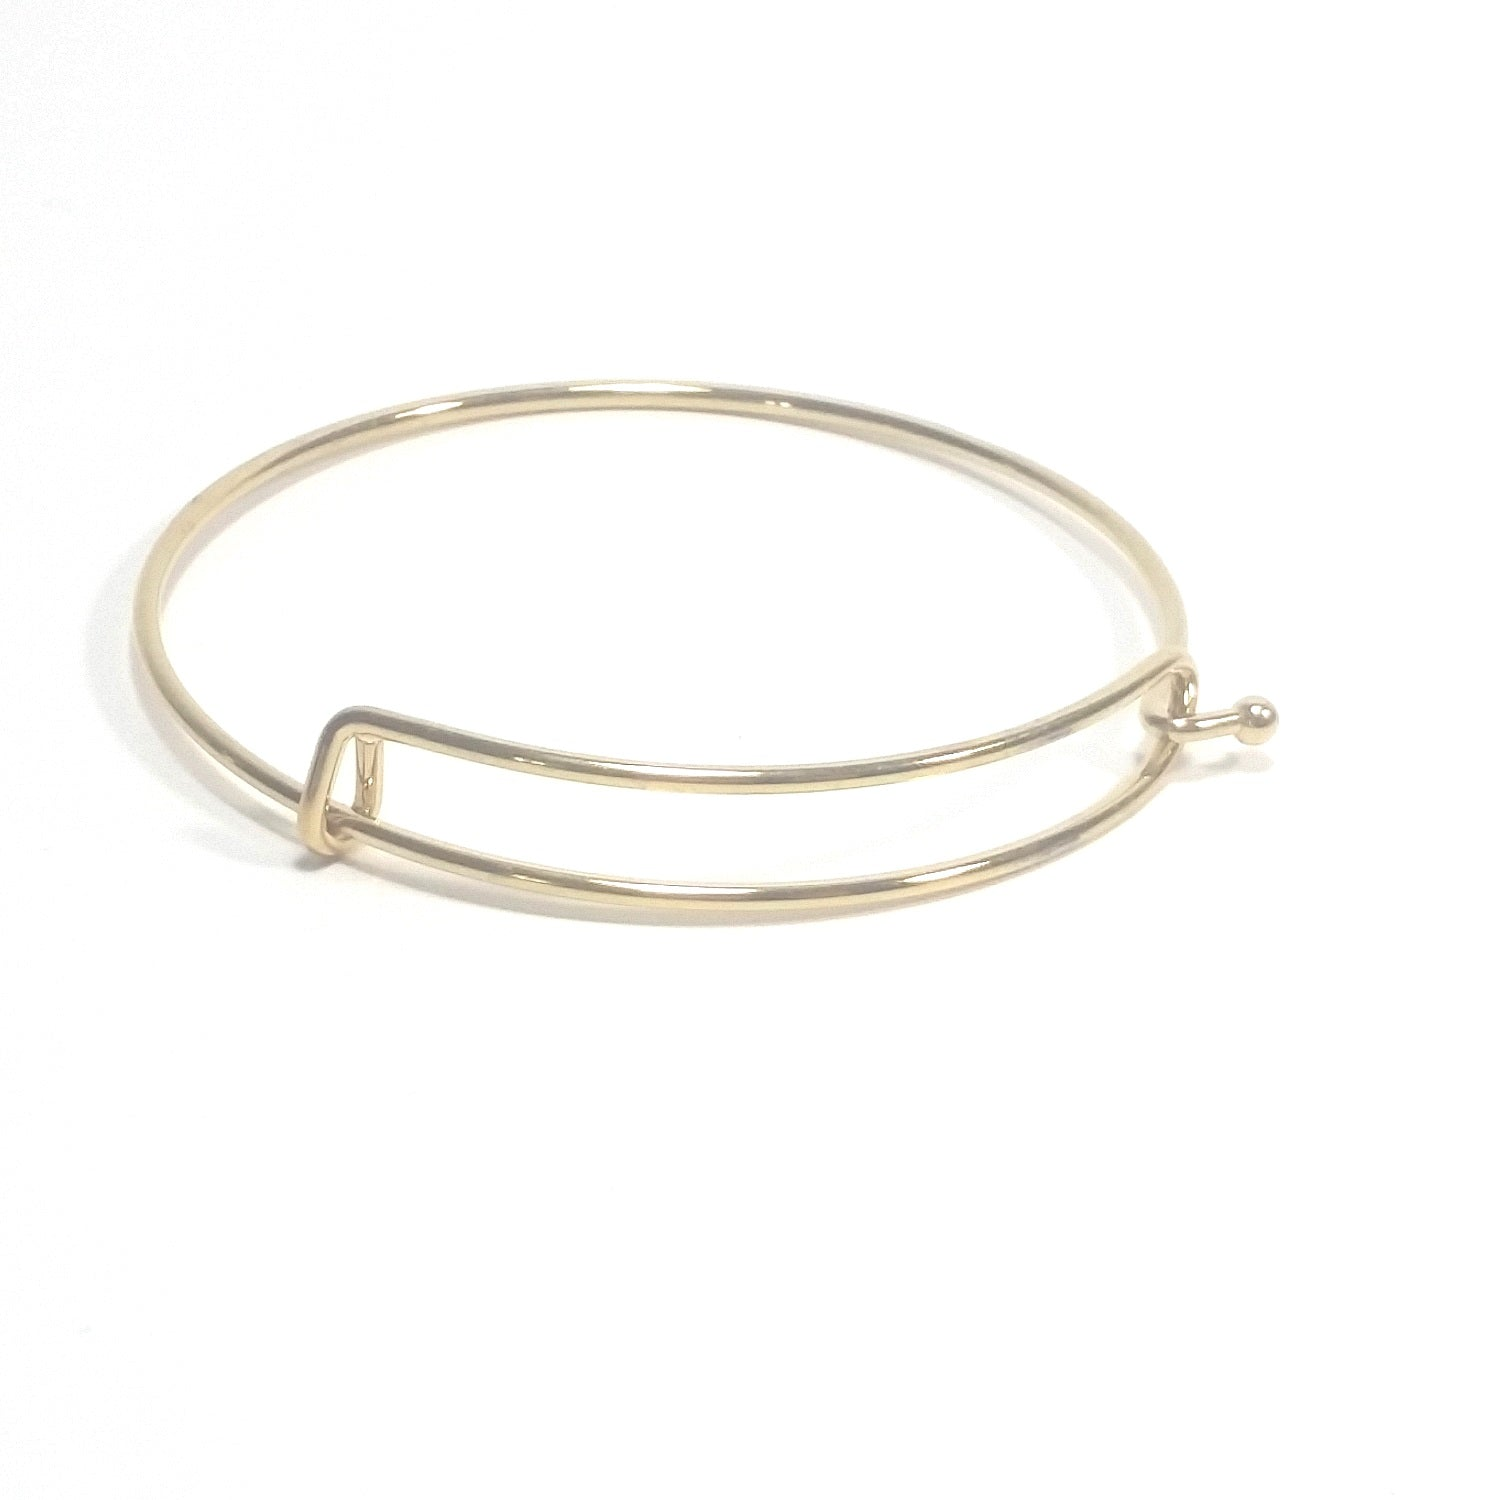 plated gold pin cortina karat giles brother cuff leather bracelets jewels bangle bangles